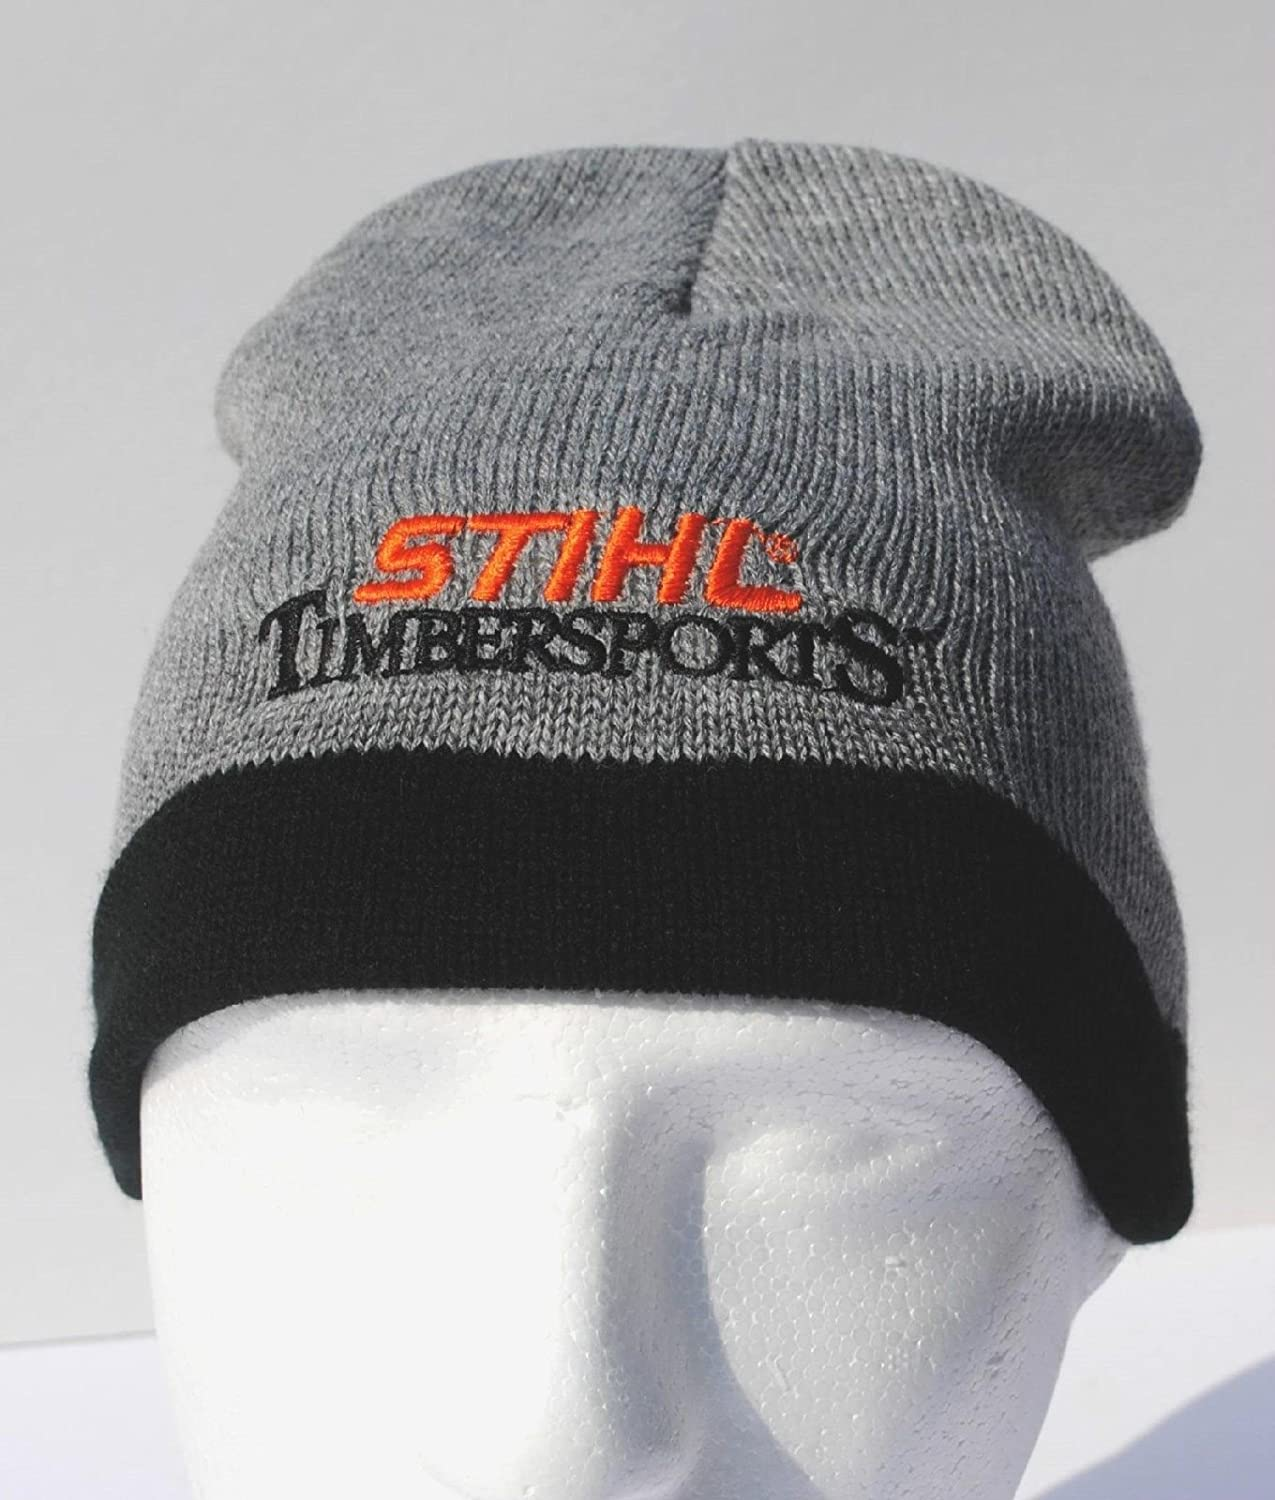 Amazon.com   STIHL gray and black knitted beanie   cap   hat   Everything  Else 48e0569c8be